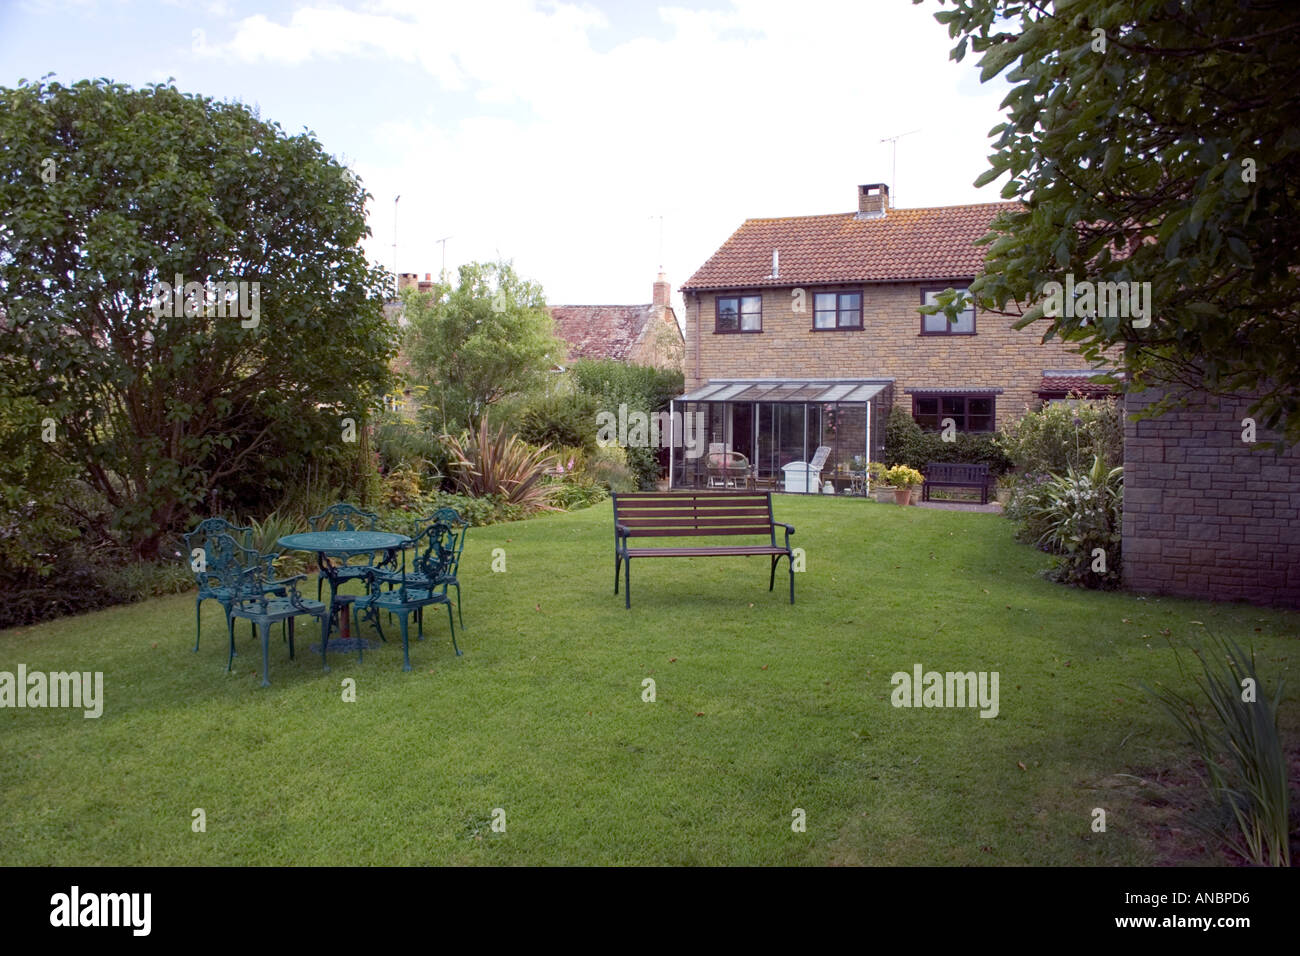 stock photo rear view modern fake hamstone house secluded back garden furniture table bench conservatory rural village tree shrub bush chimn